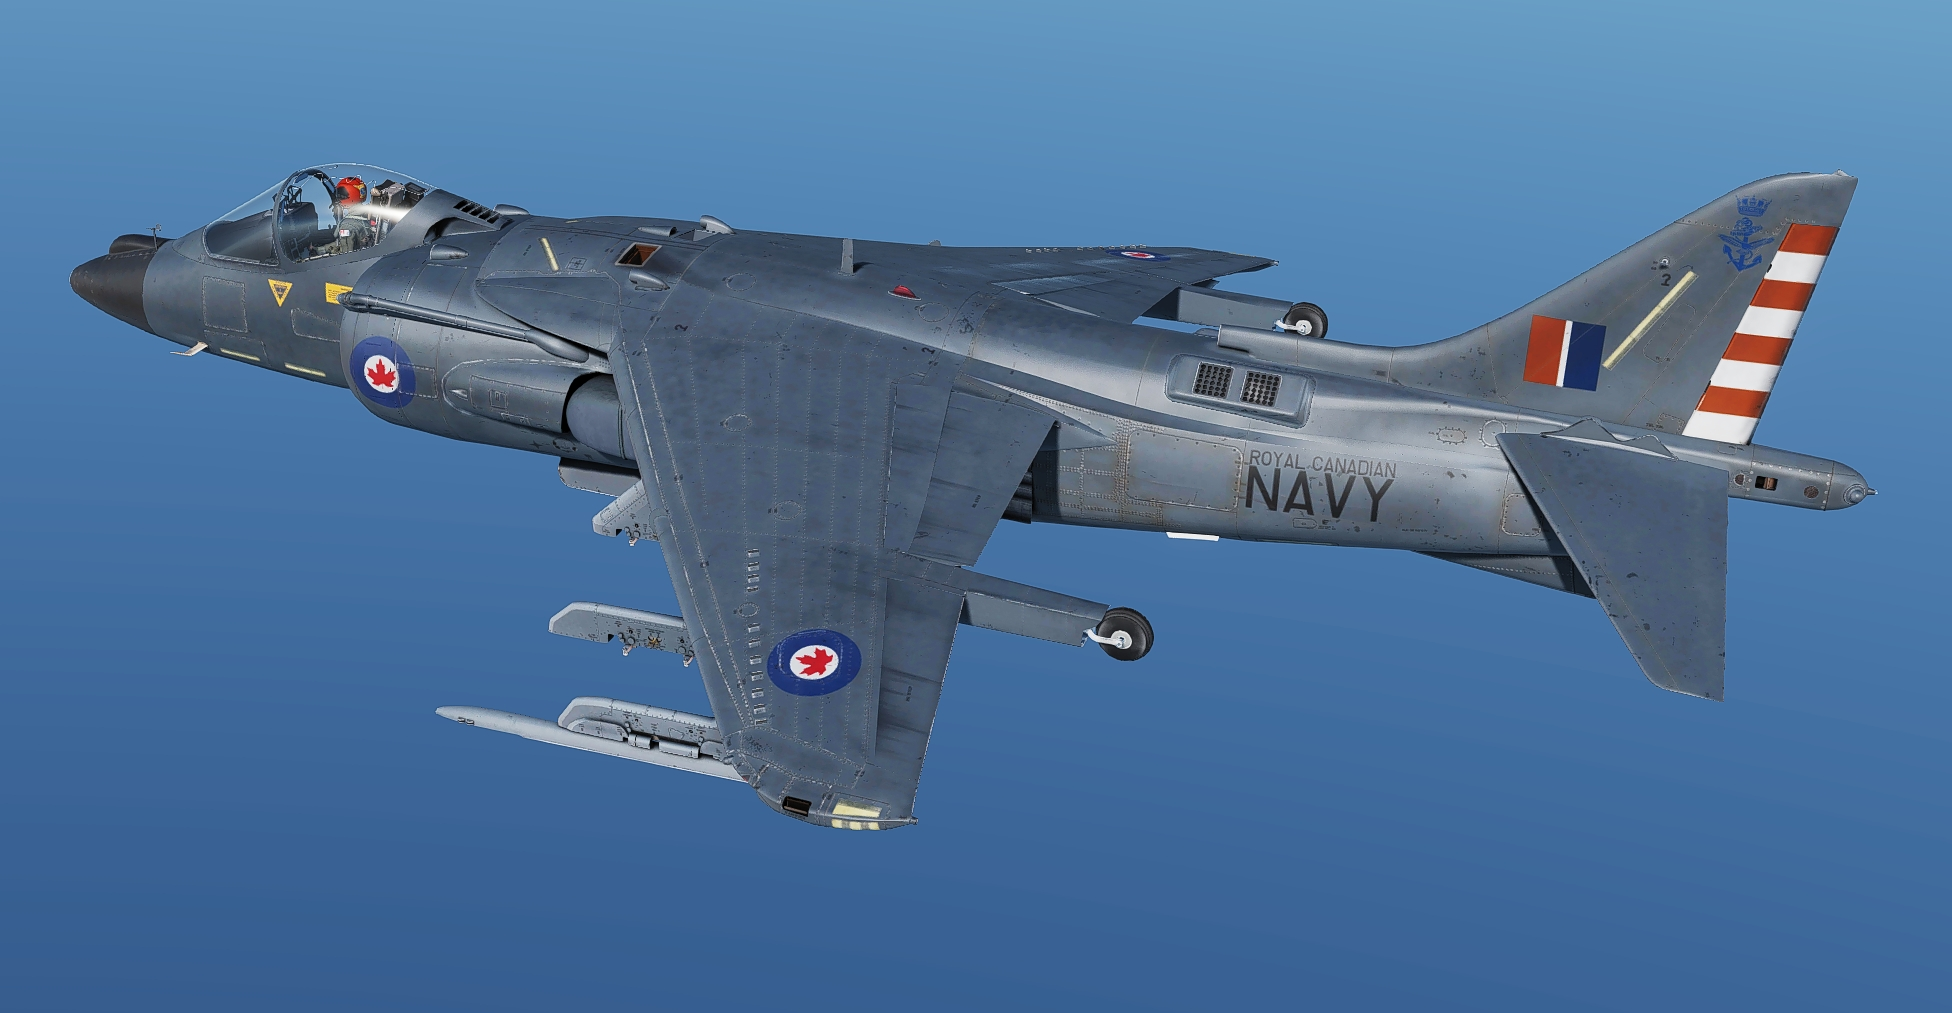 Royal Canadian Navy Harriers #2 (Fictional)